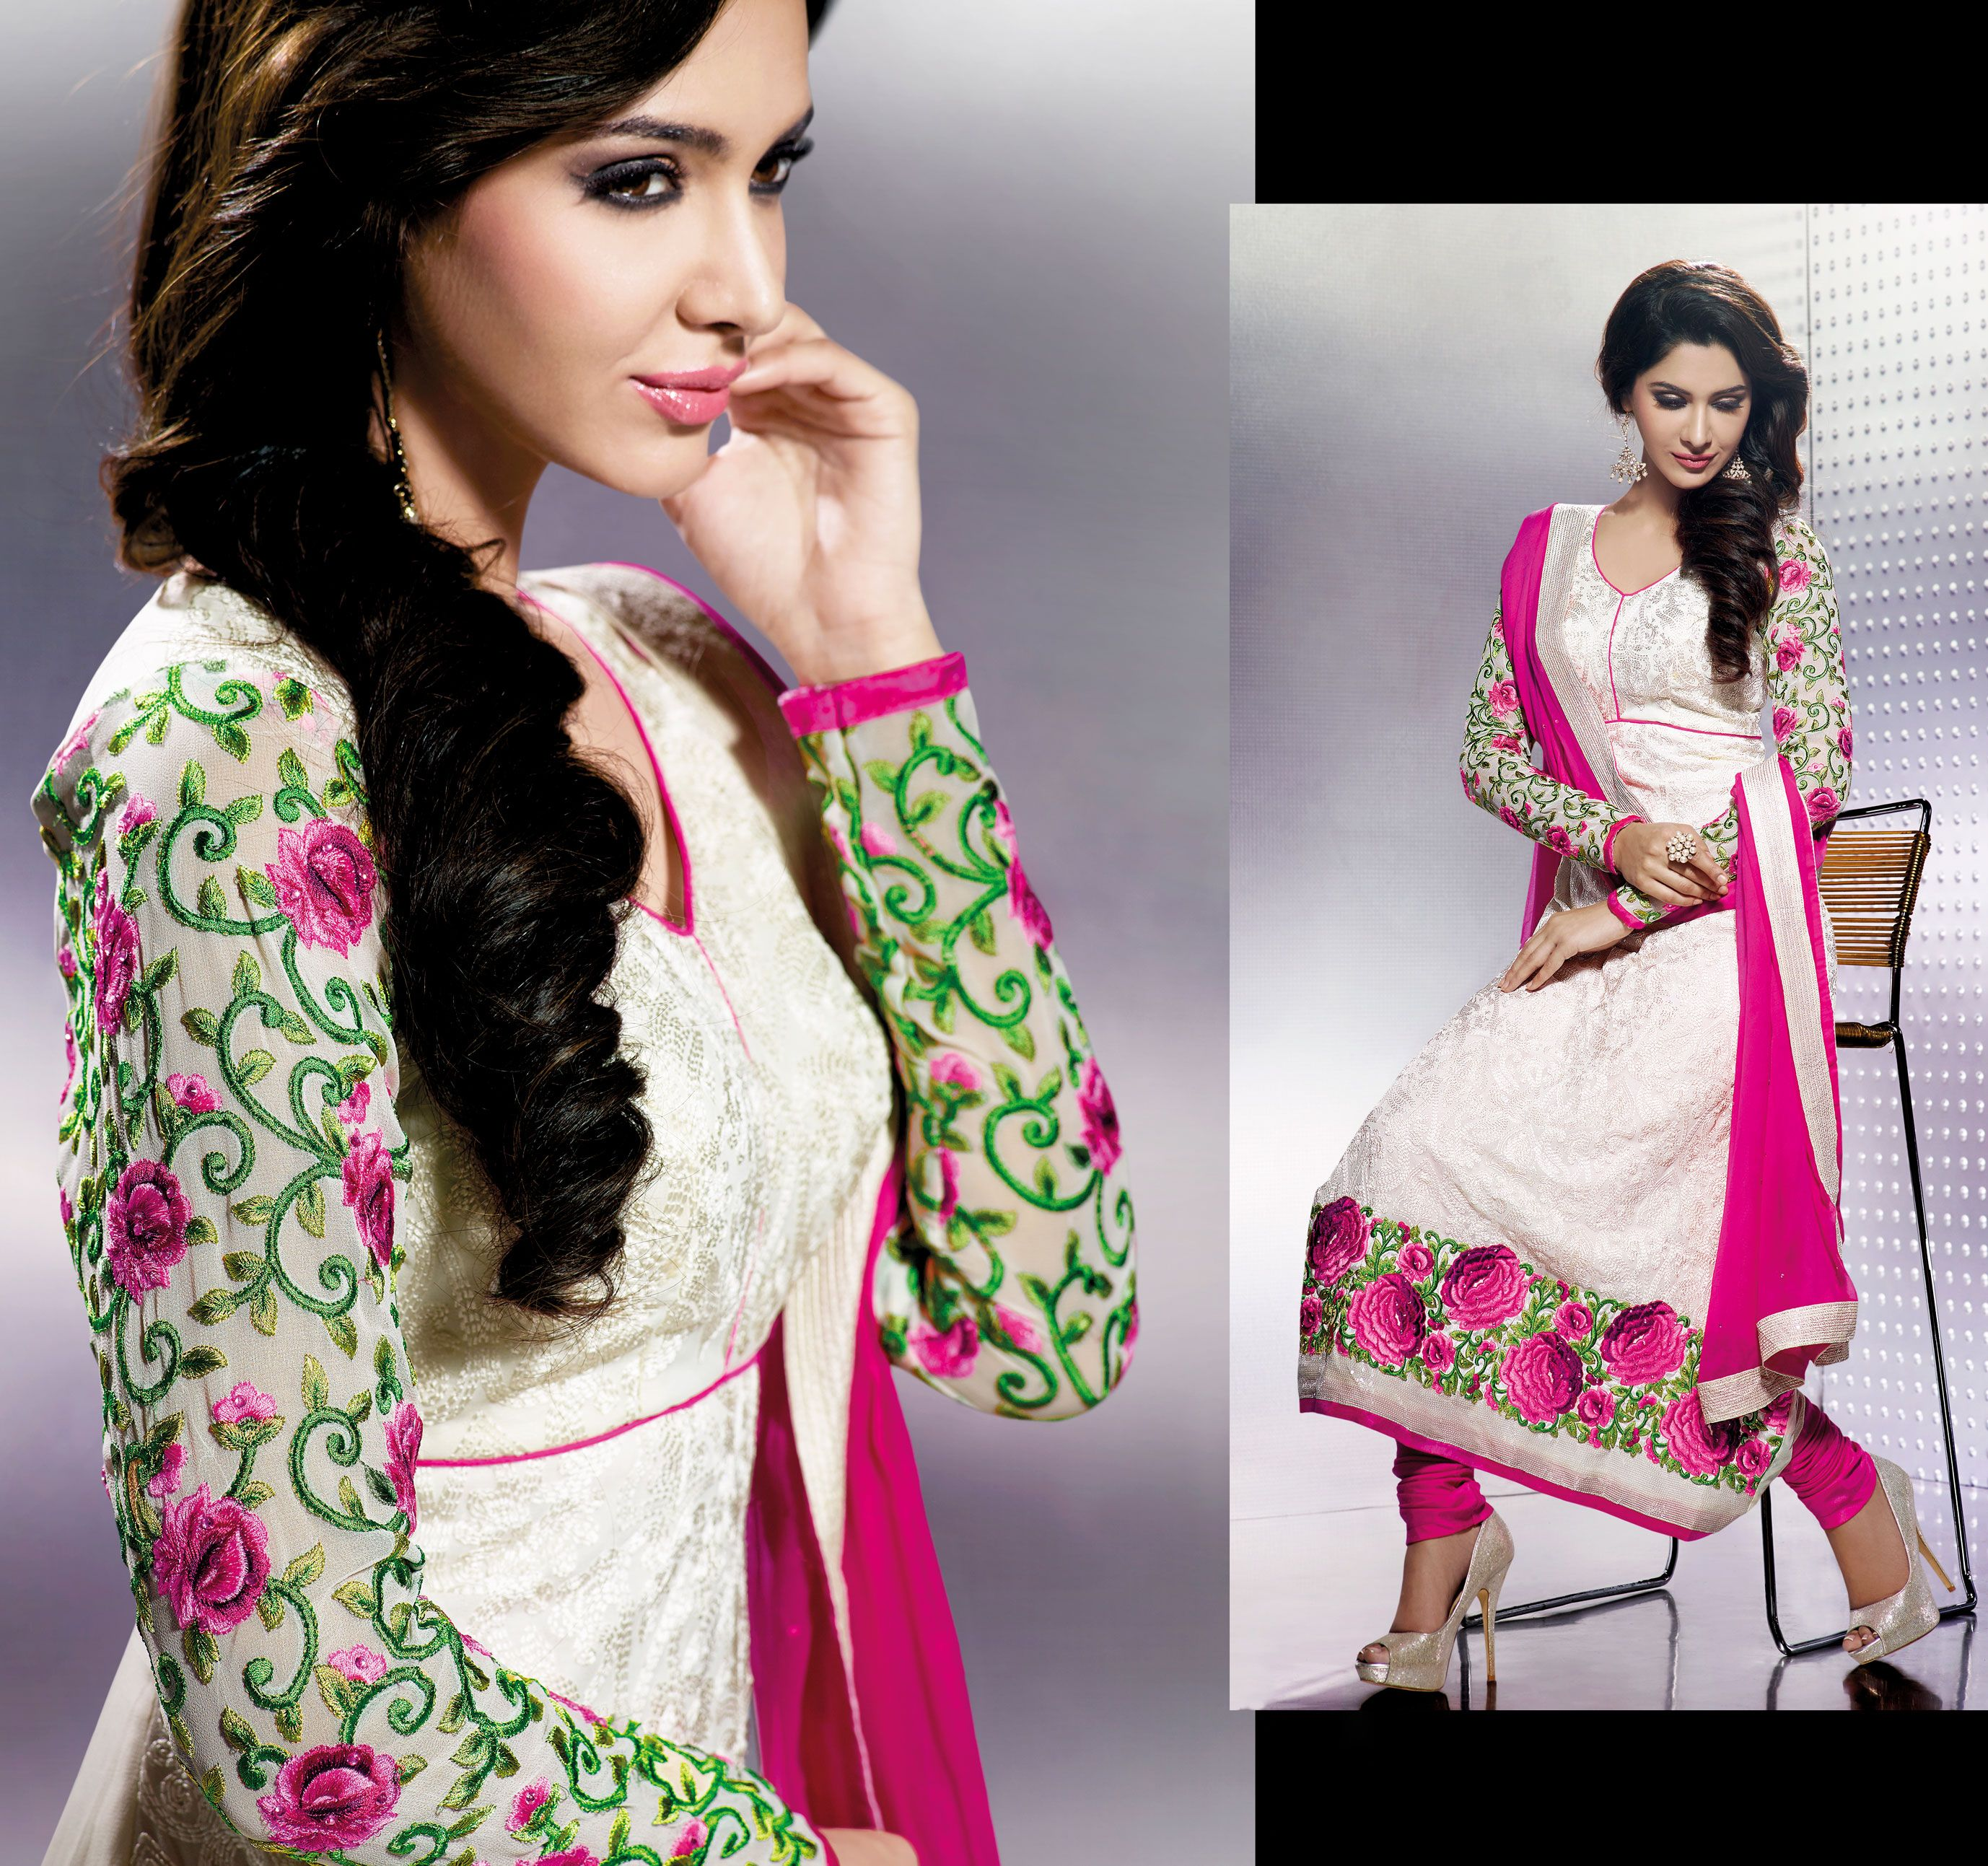 Desgienr Salwar Suit @ Affordable Price. Please feel free to ask for ...